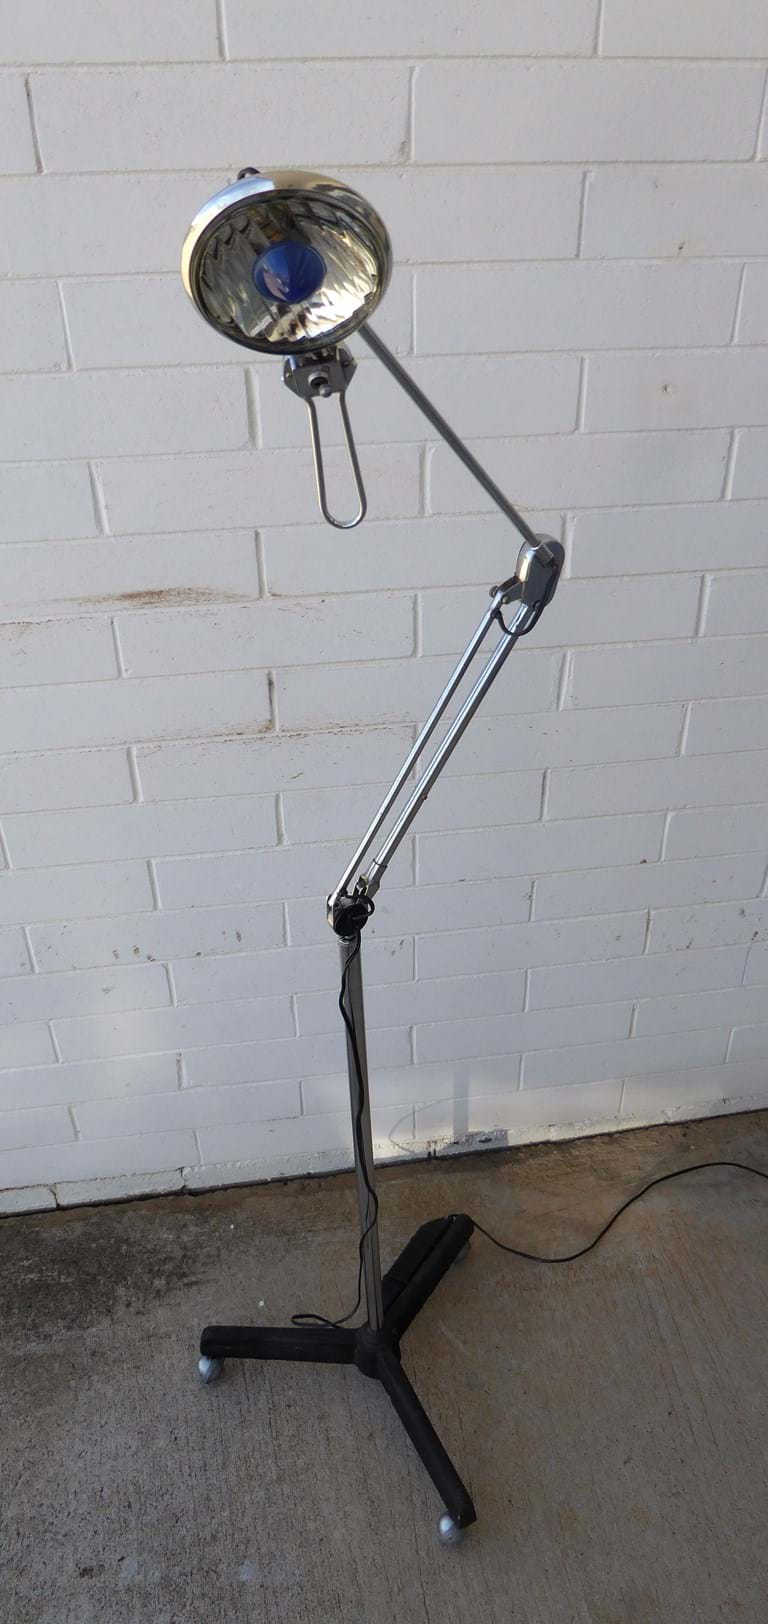 1960s examination floor lamp by Planet Lighting